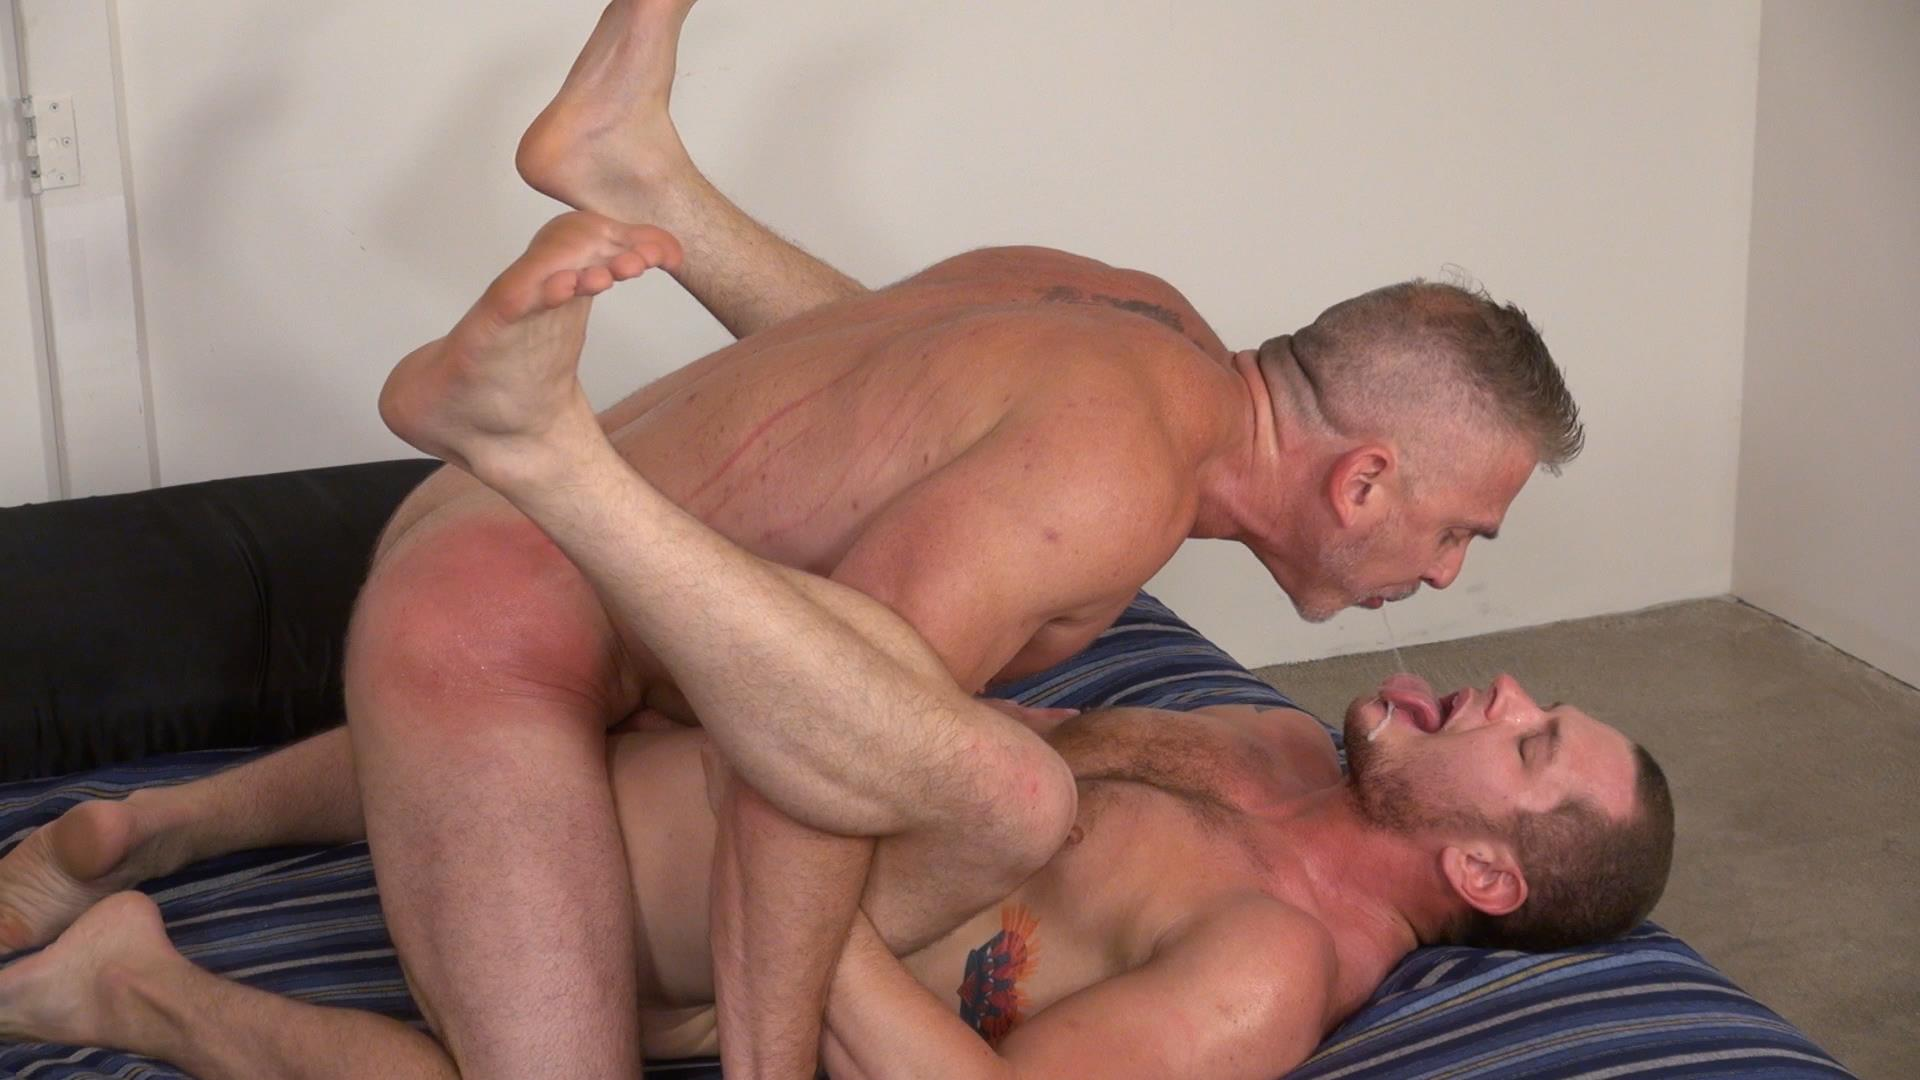 Free gay blow job videos